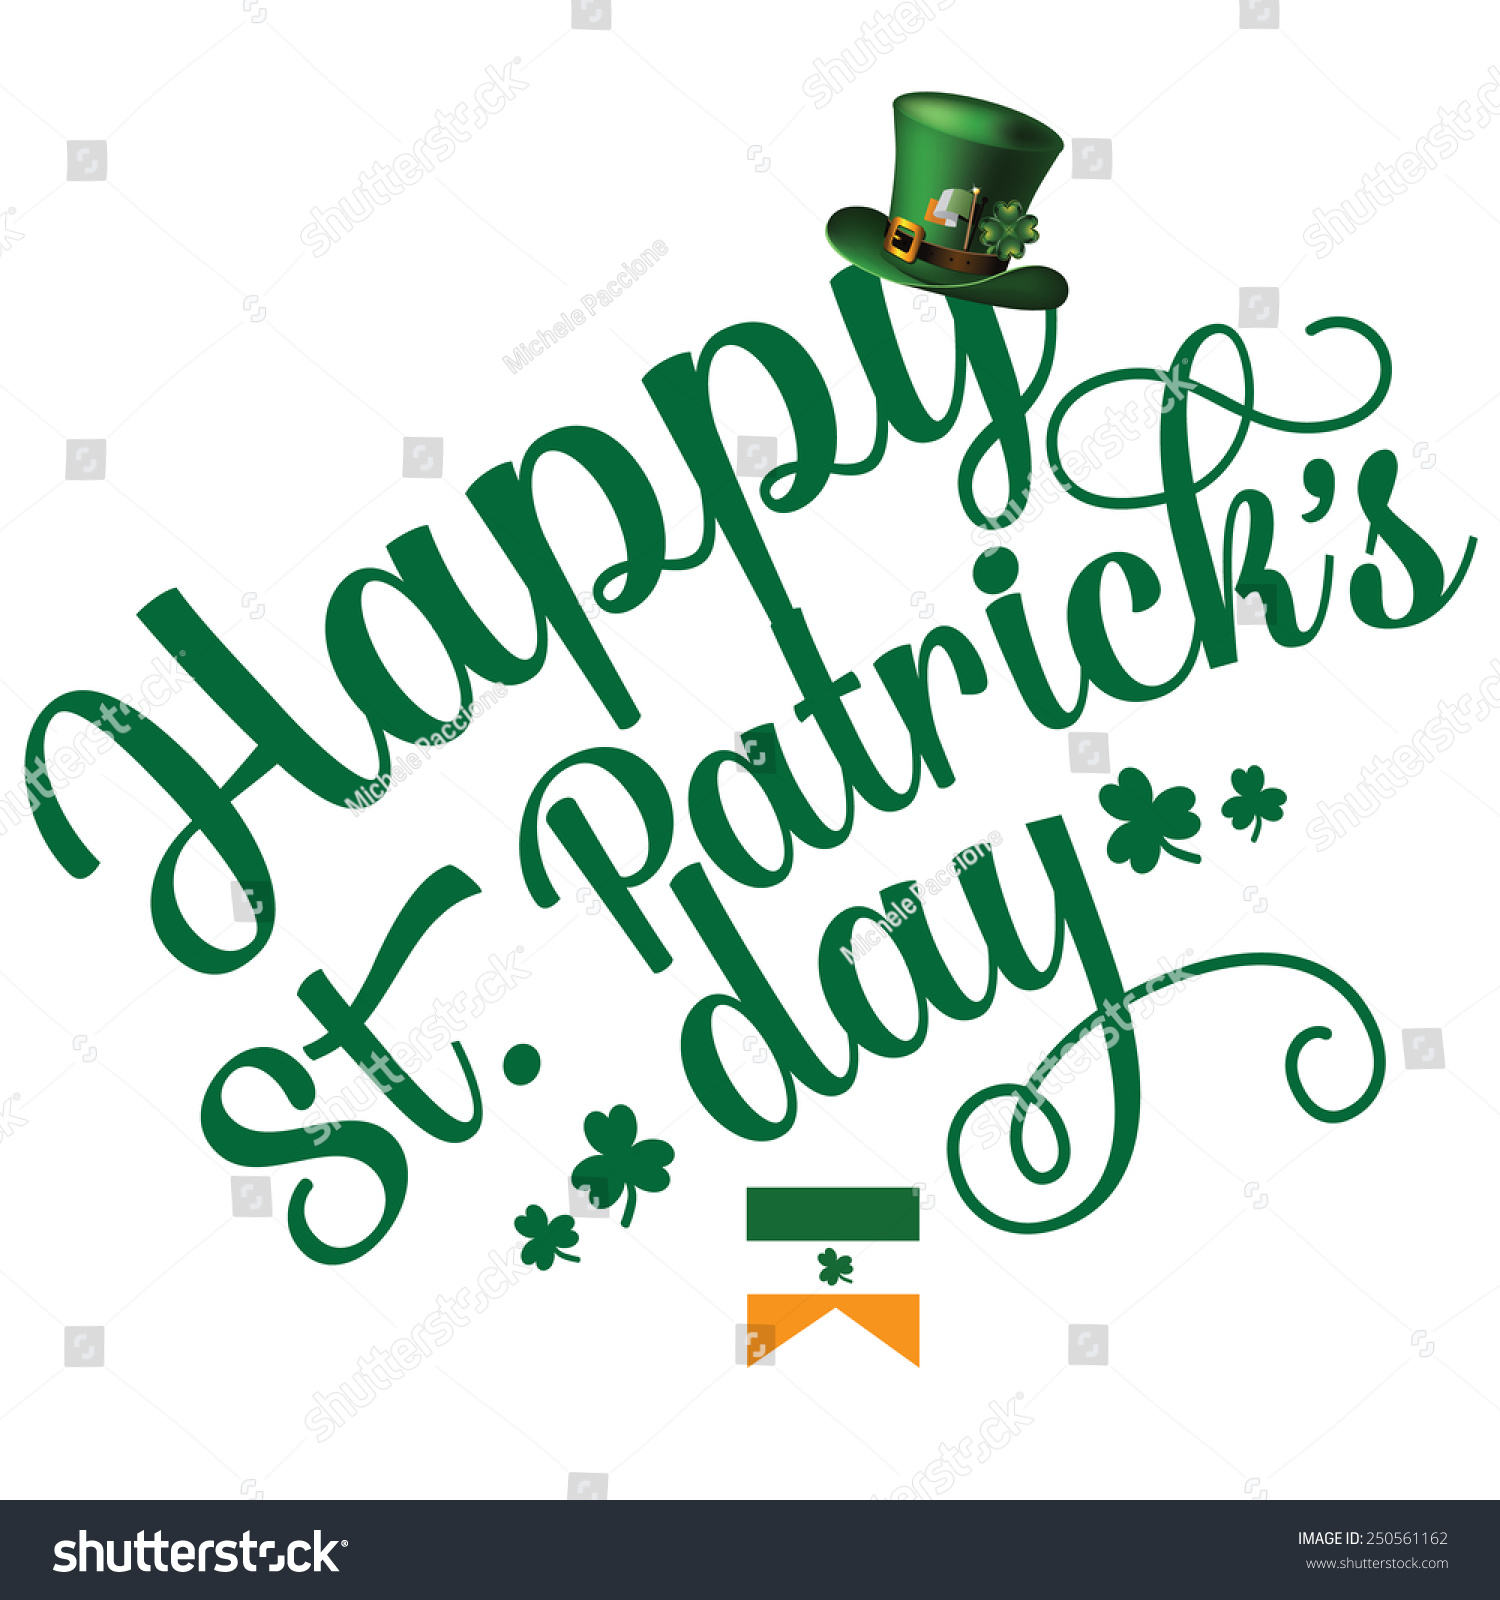 happy st day cheerful text design stock vector 250561162